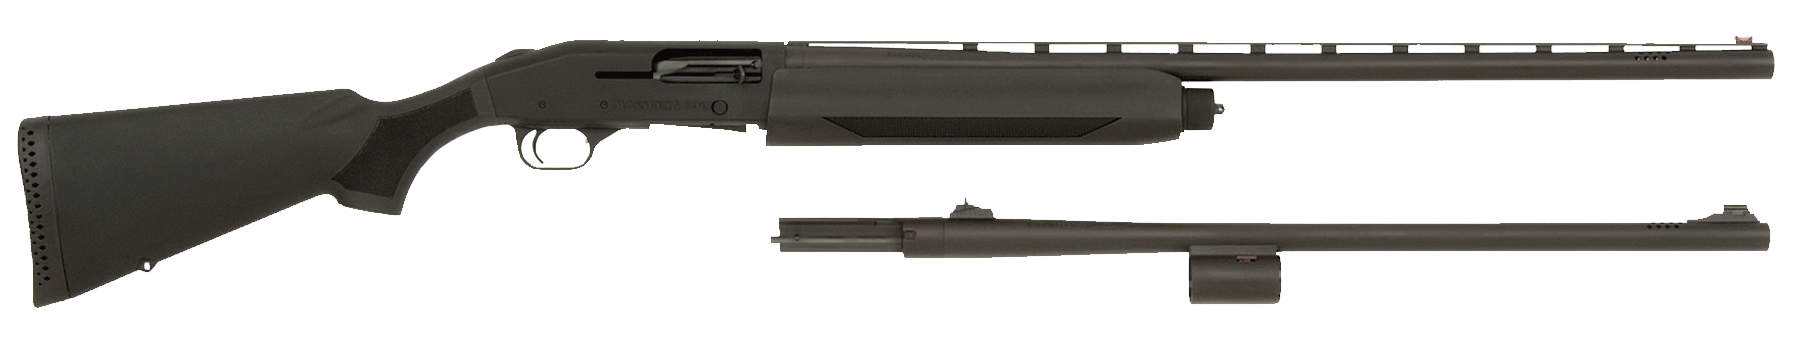 Mossberg 85238 930 Combo Semi-Automatic N/A 12 Gauge Matte Blued